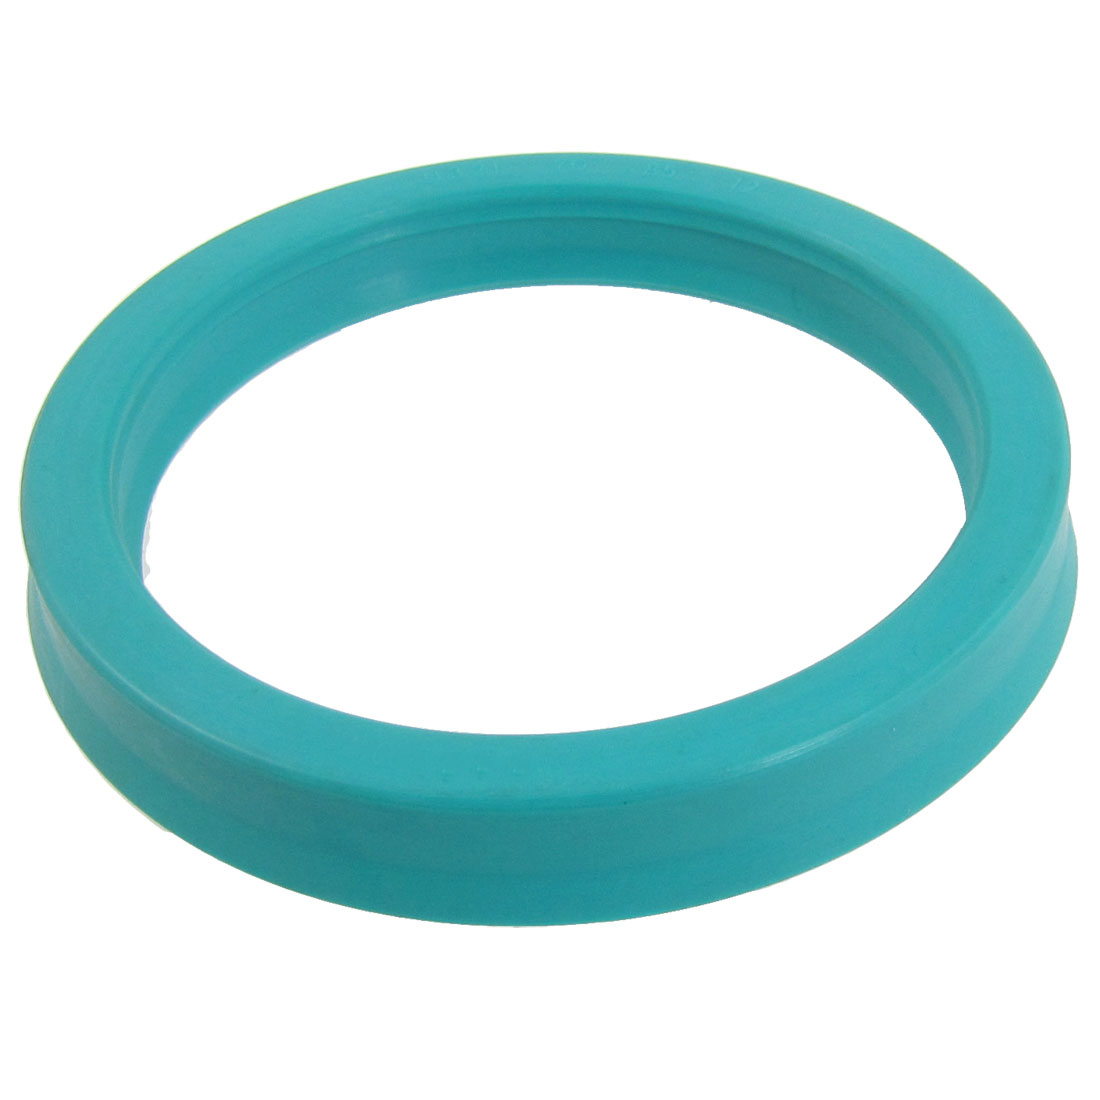 U32i Metric Single Lipped Hydraulic Rod PU Grease Oil Seal 70x85x12mm Cyan Blue